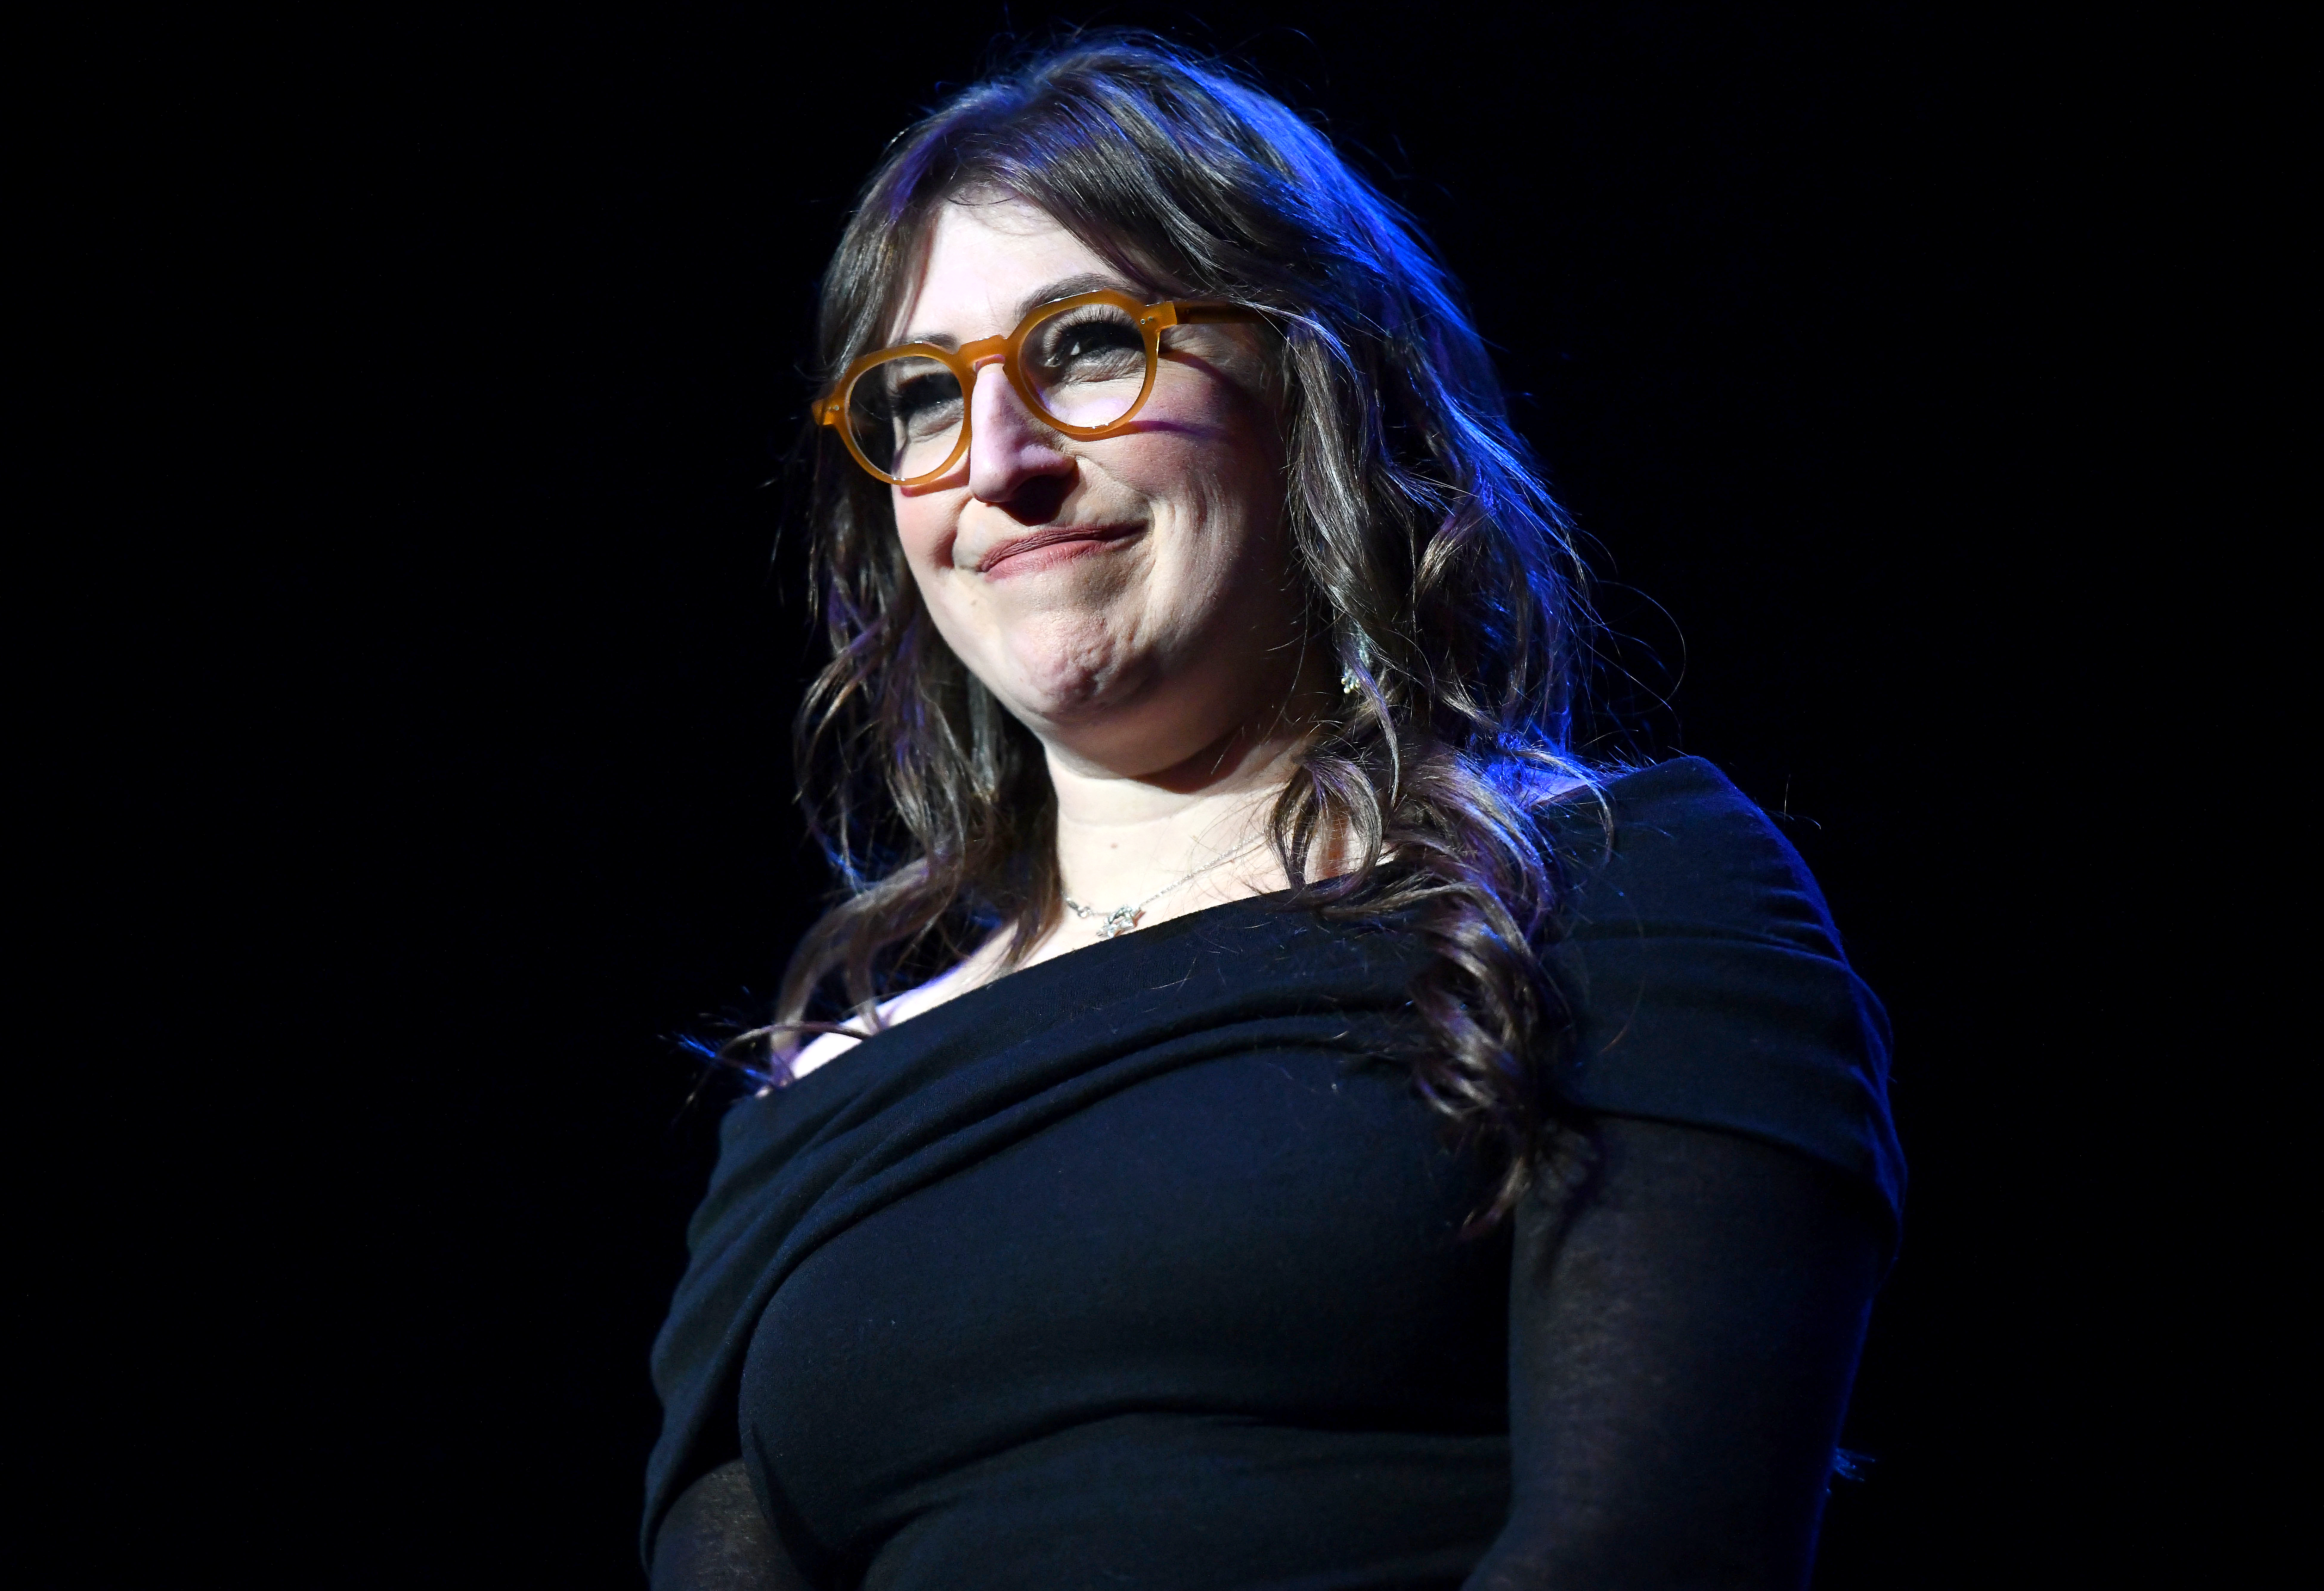 Mayim Bialik Go Vegan Start Small - Mayim Bialik performs at The 7th Annual Adopt the Arts Benefit Gala on March 07, 2019 in Los Angeles, California.